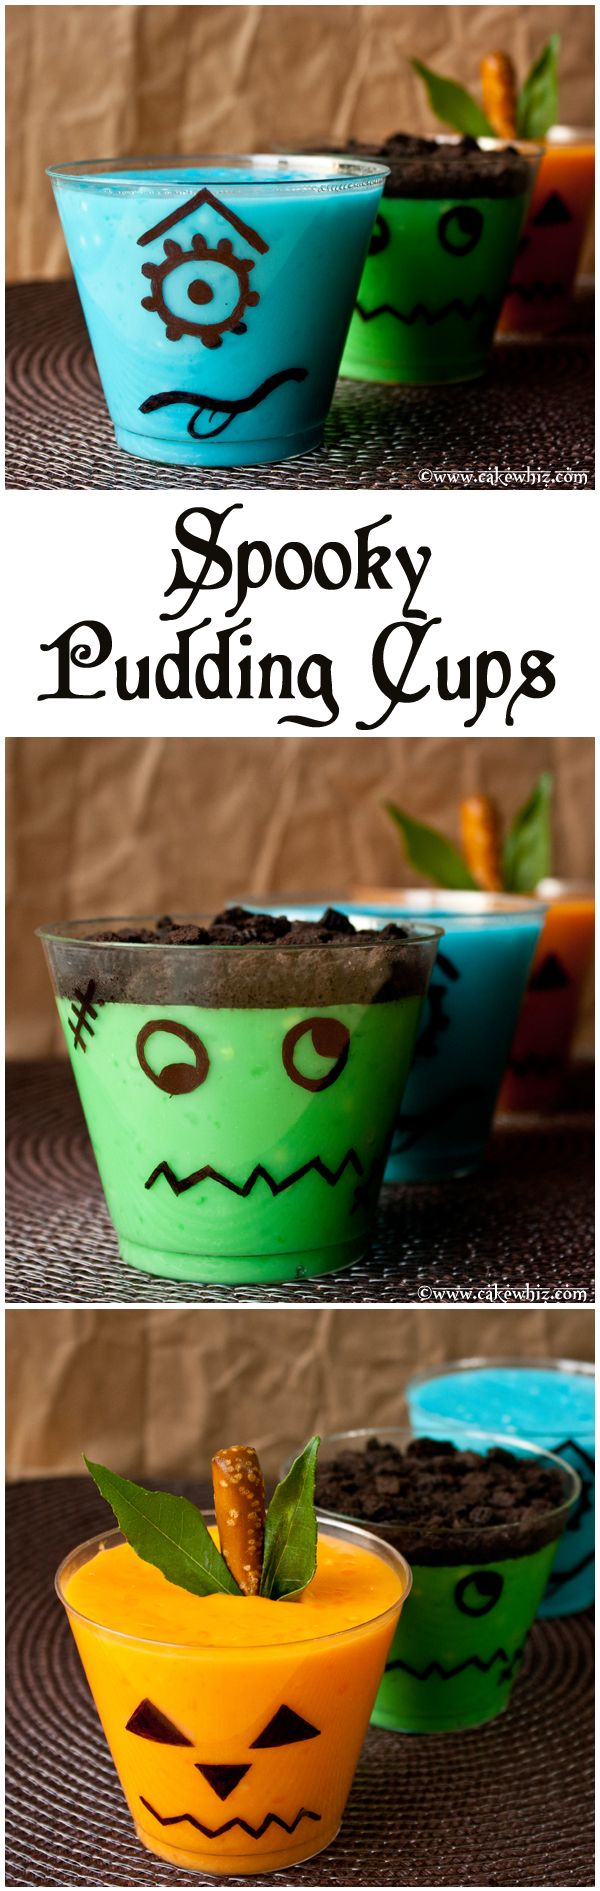 Spooky pudding cups for Halloween! Kids go crazy for these, every year! ;) From cakewhiz.com